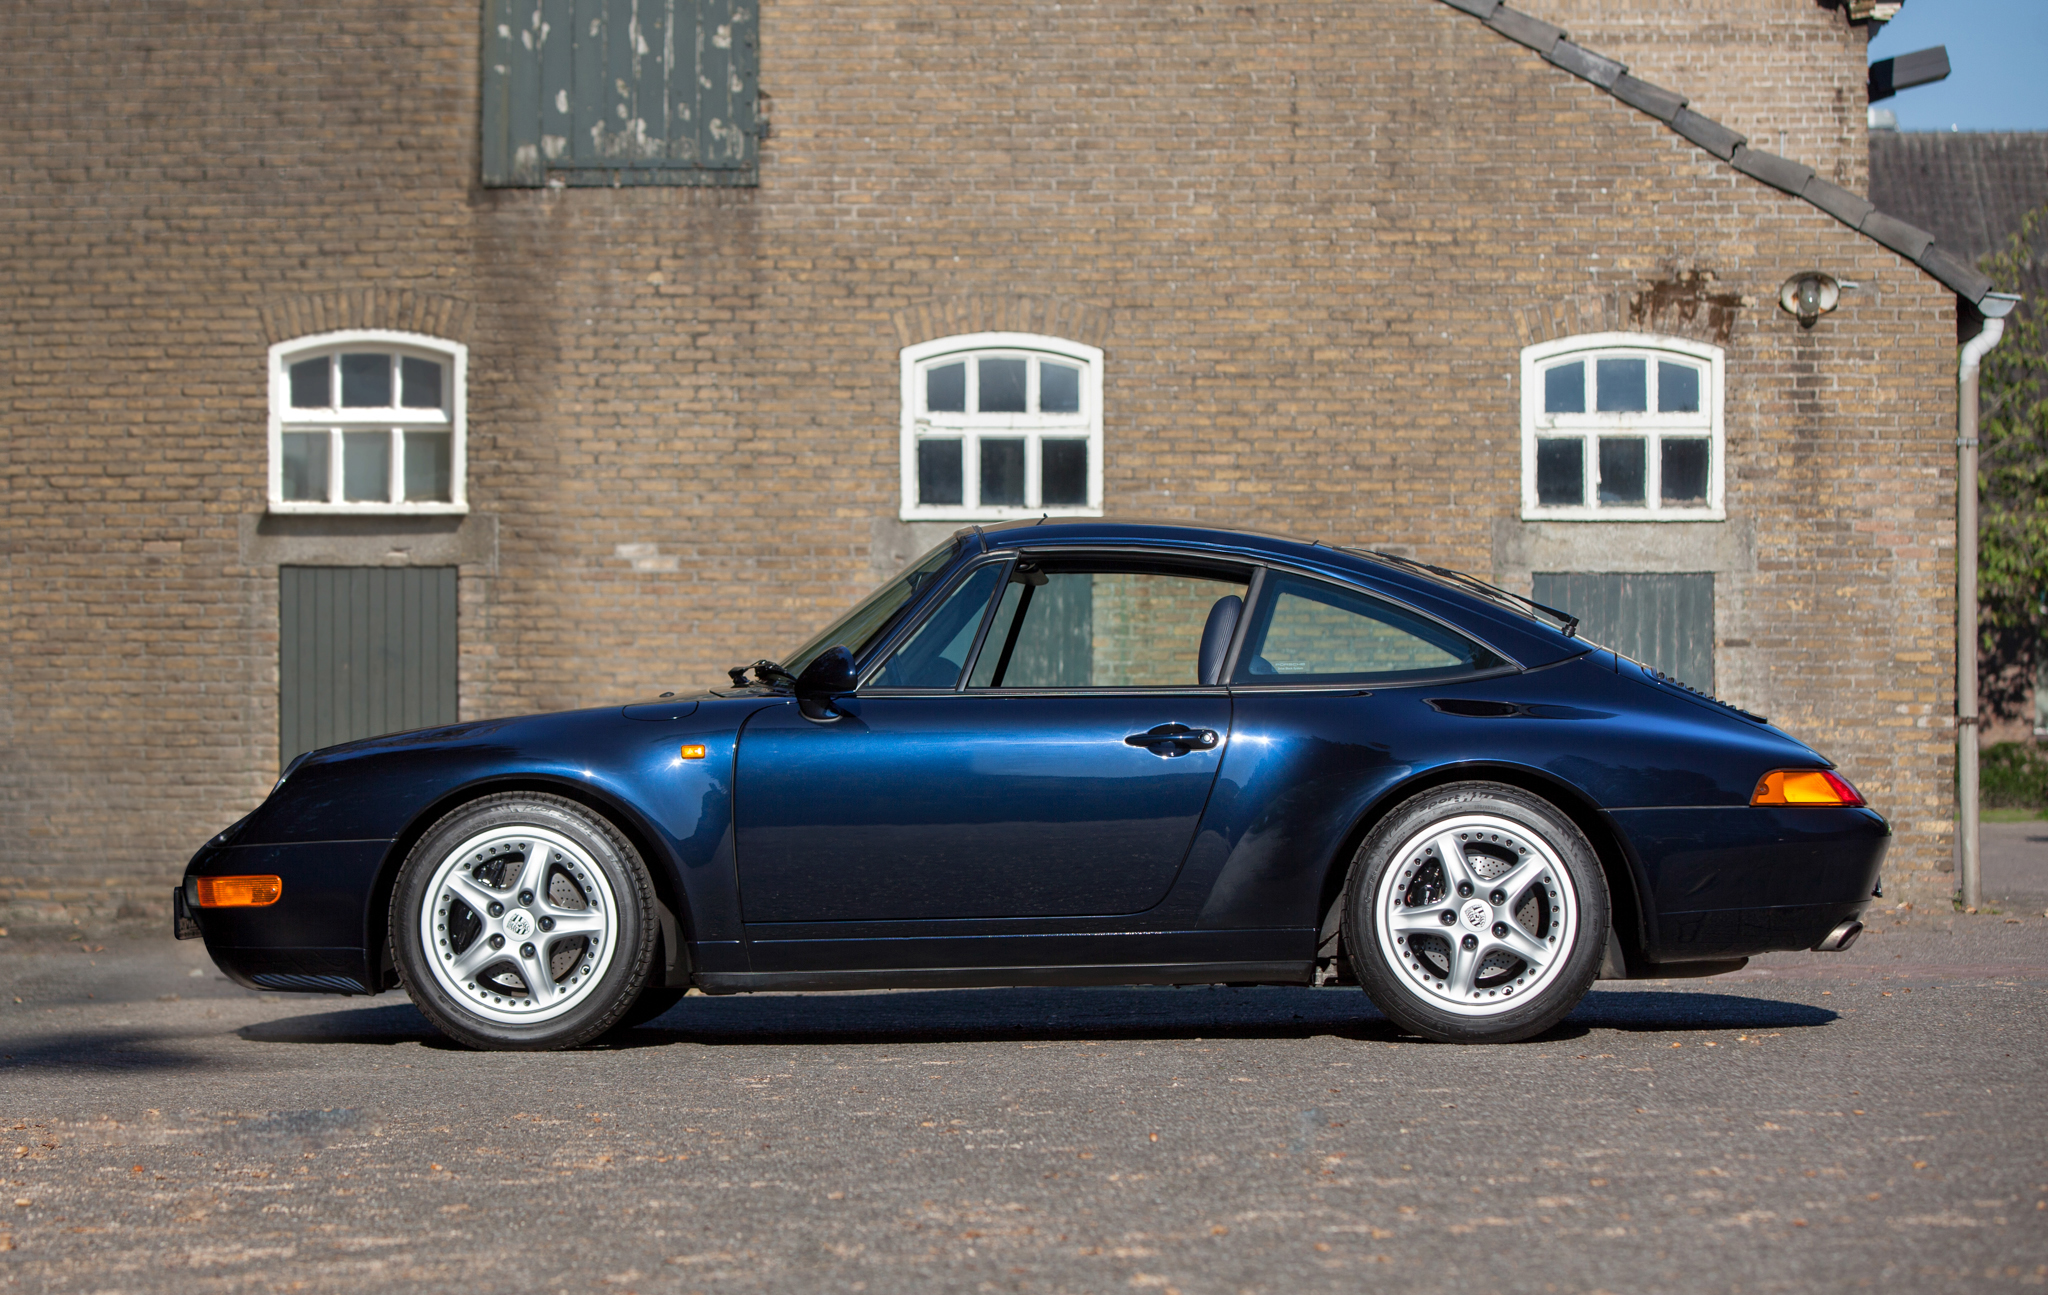 l c c porsche 993 targa low milage like new. Black Bedroom Furniture Sets. Home Design Ideas